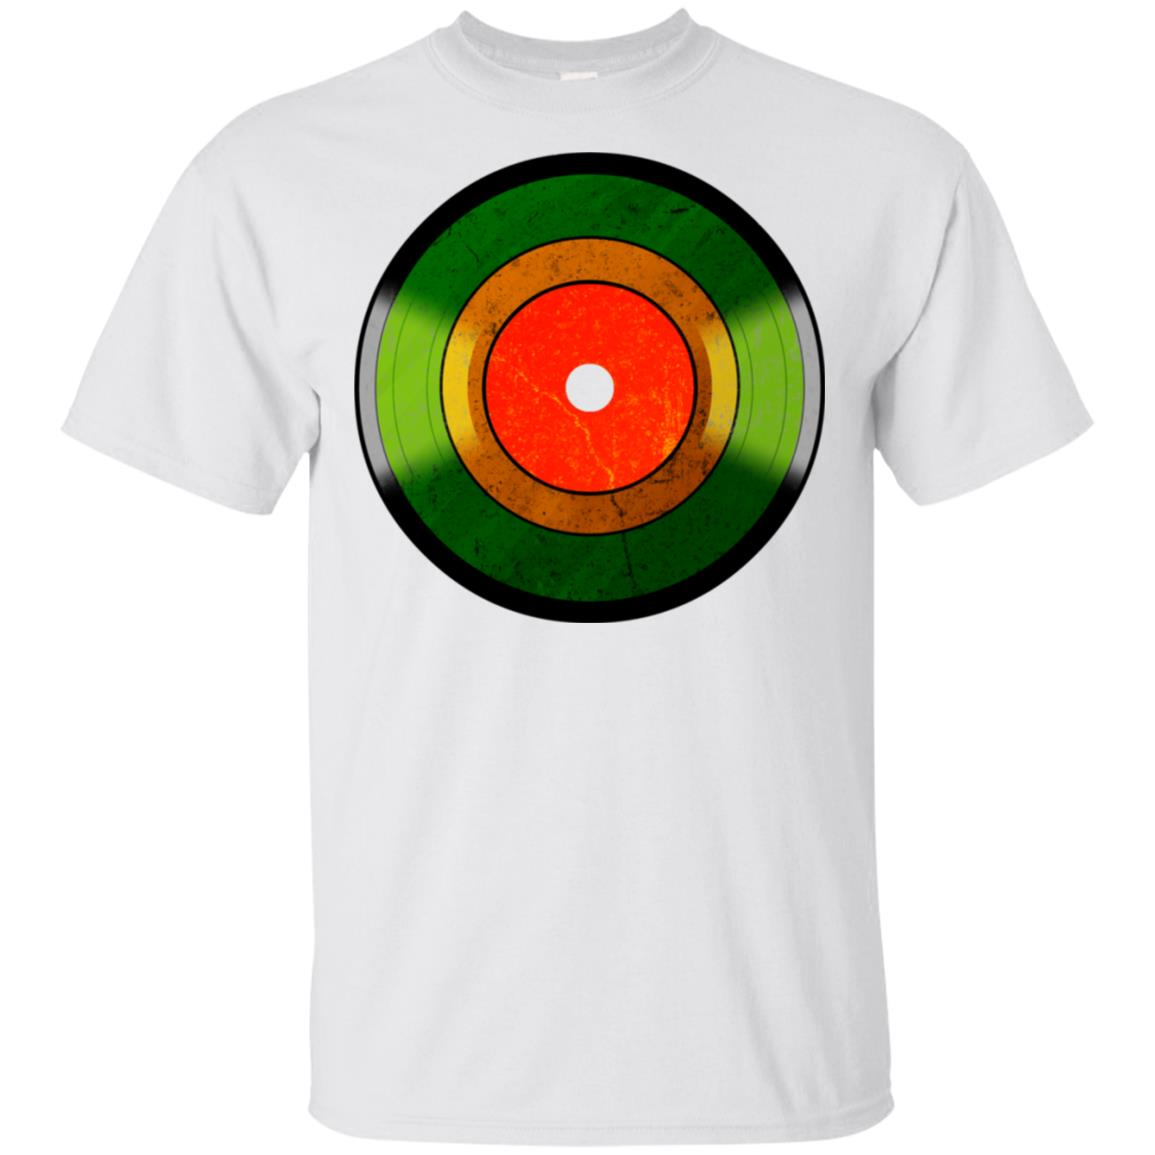 Rasta Vinyl One Love One Heart Rastafari Peace Unisex Short Sleeve